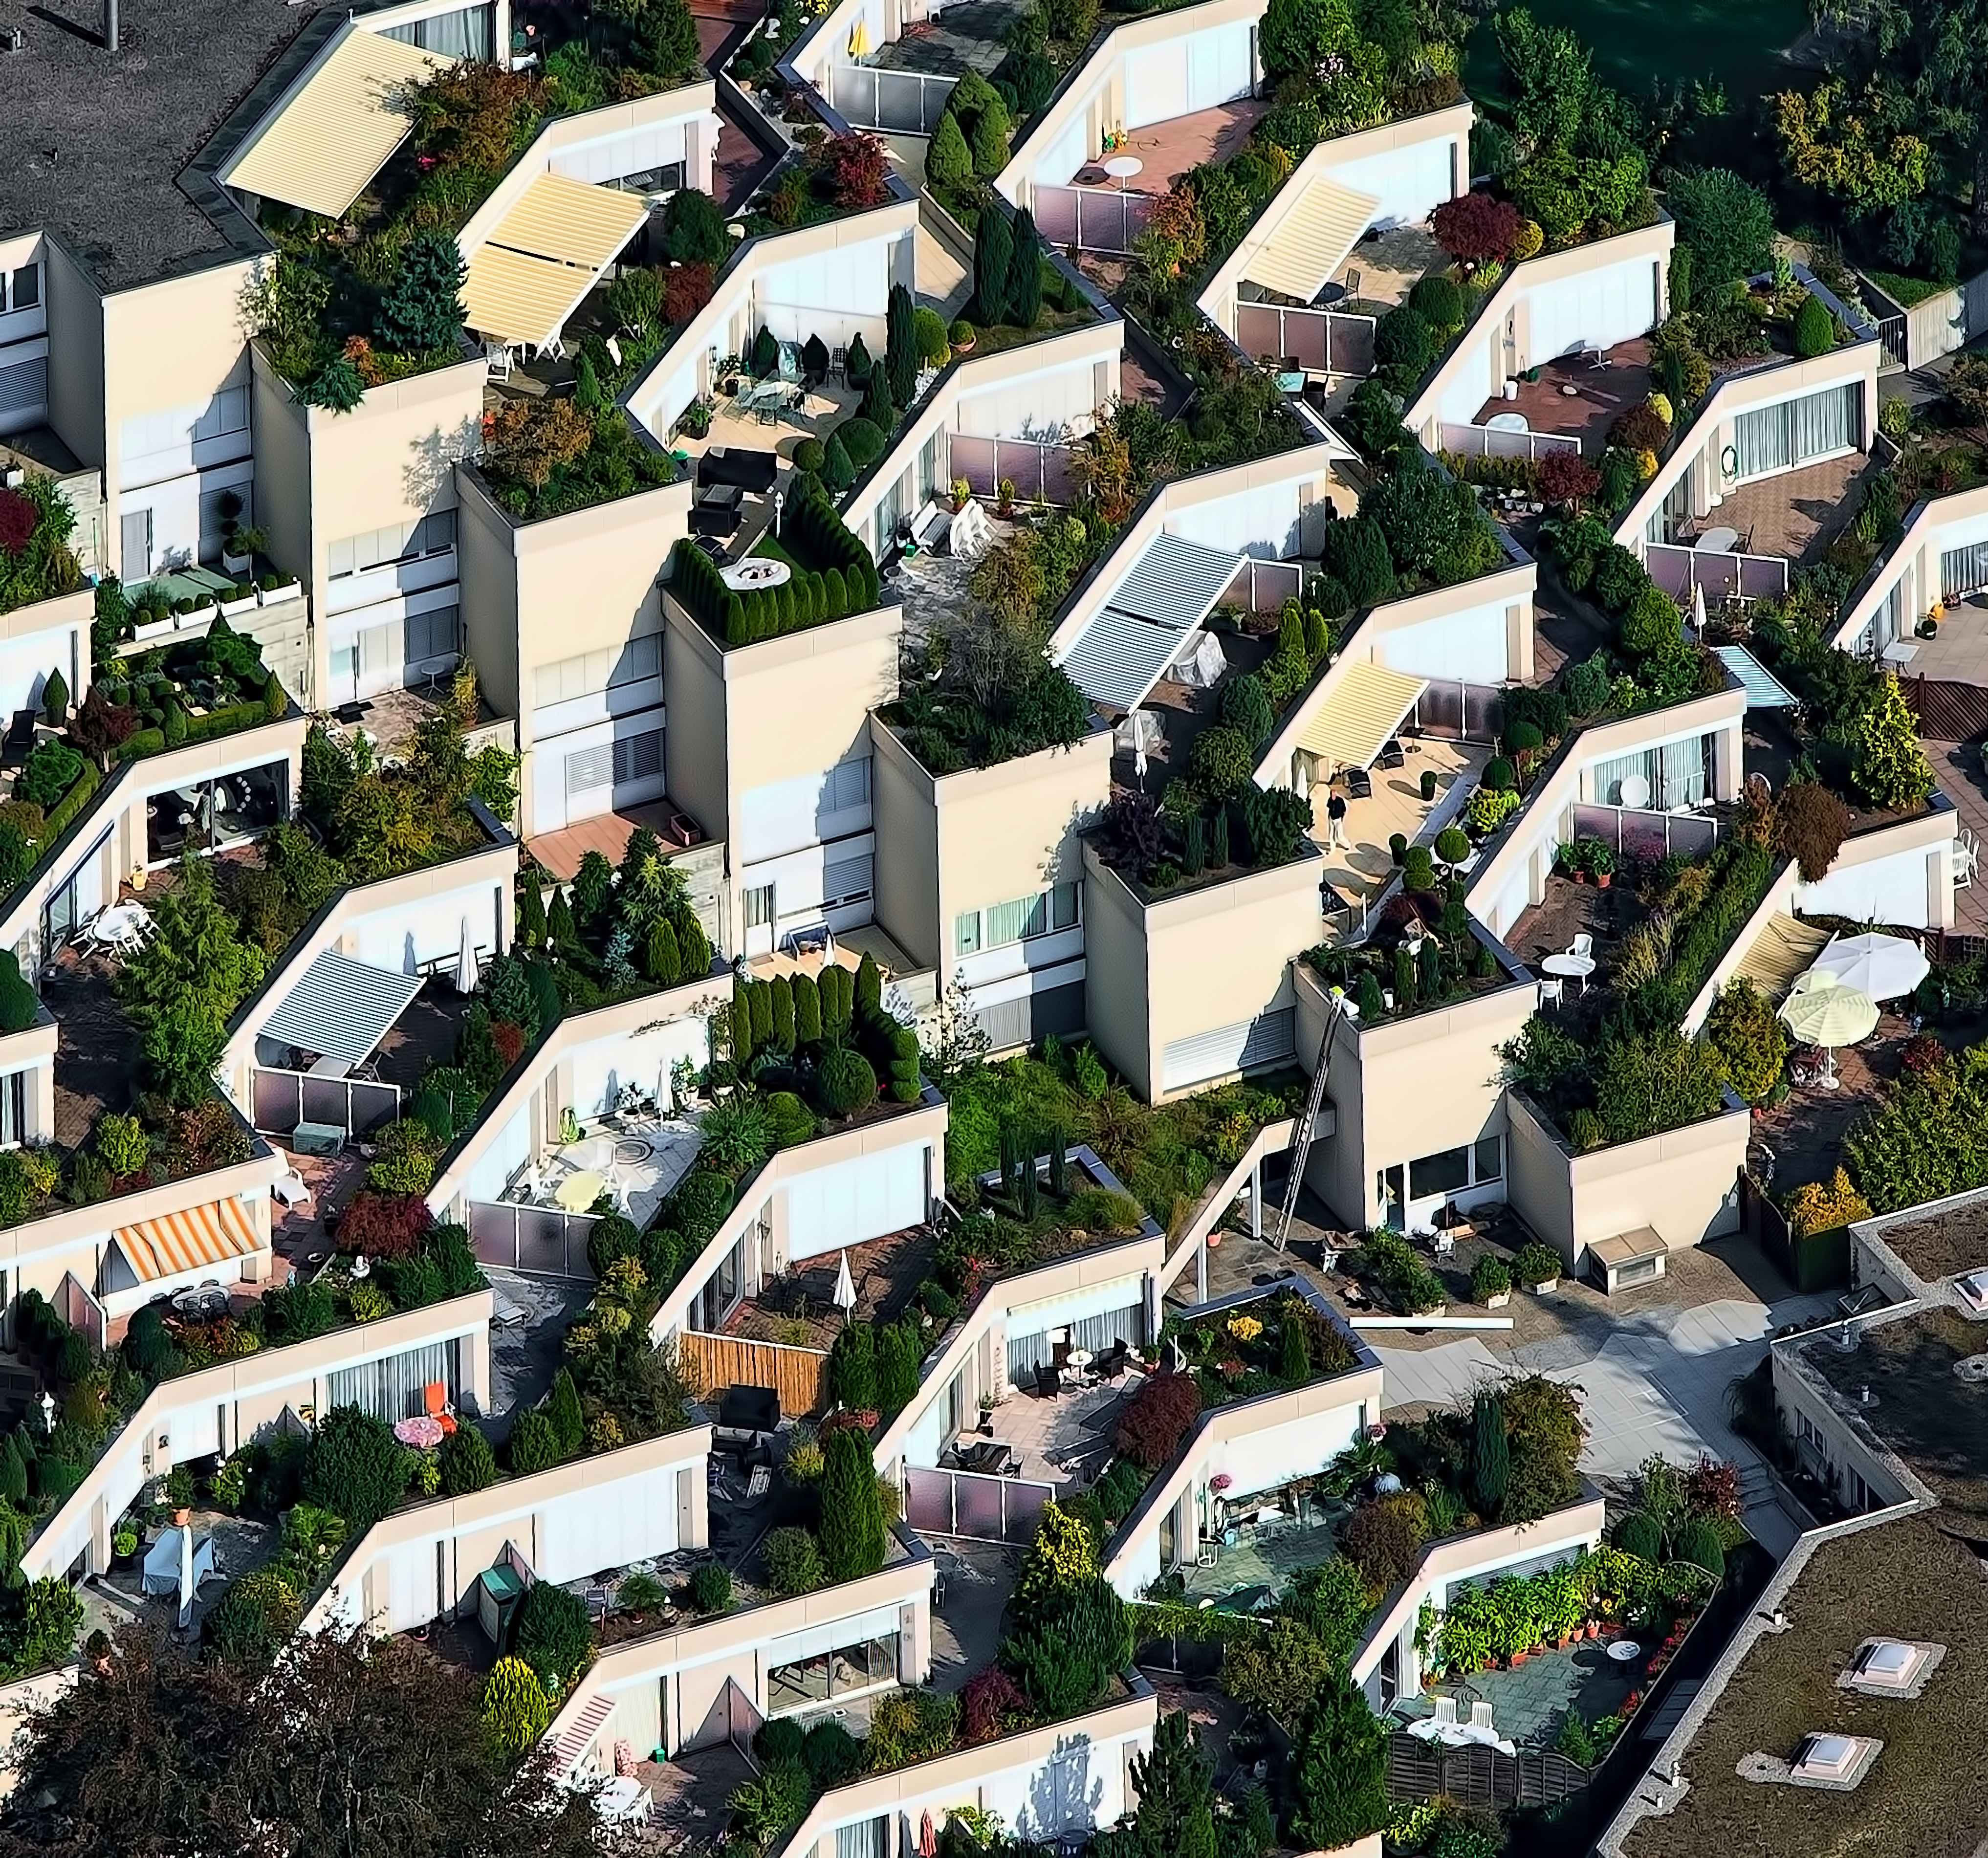 A drone shot of a housing estate with beautiful gardens on building roofs